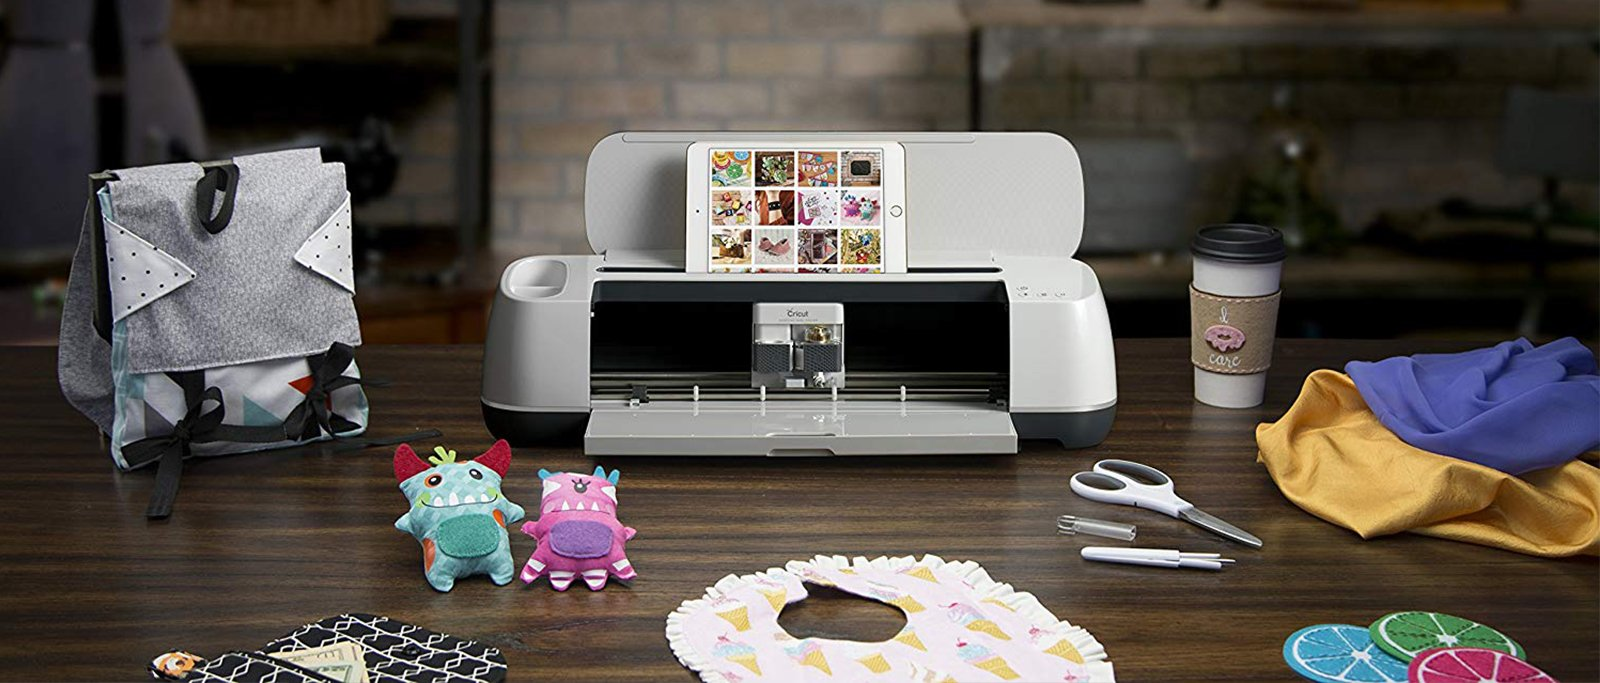 Cricut Maker vs Glowforge 2020